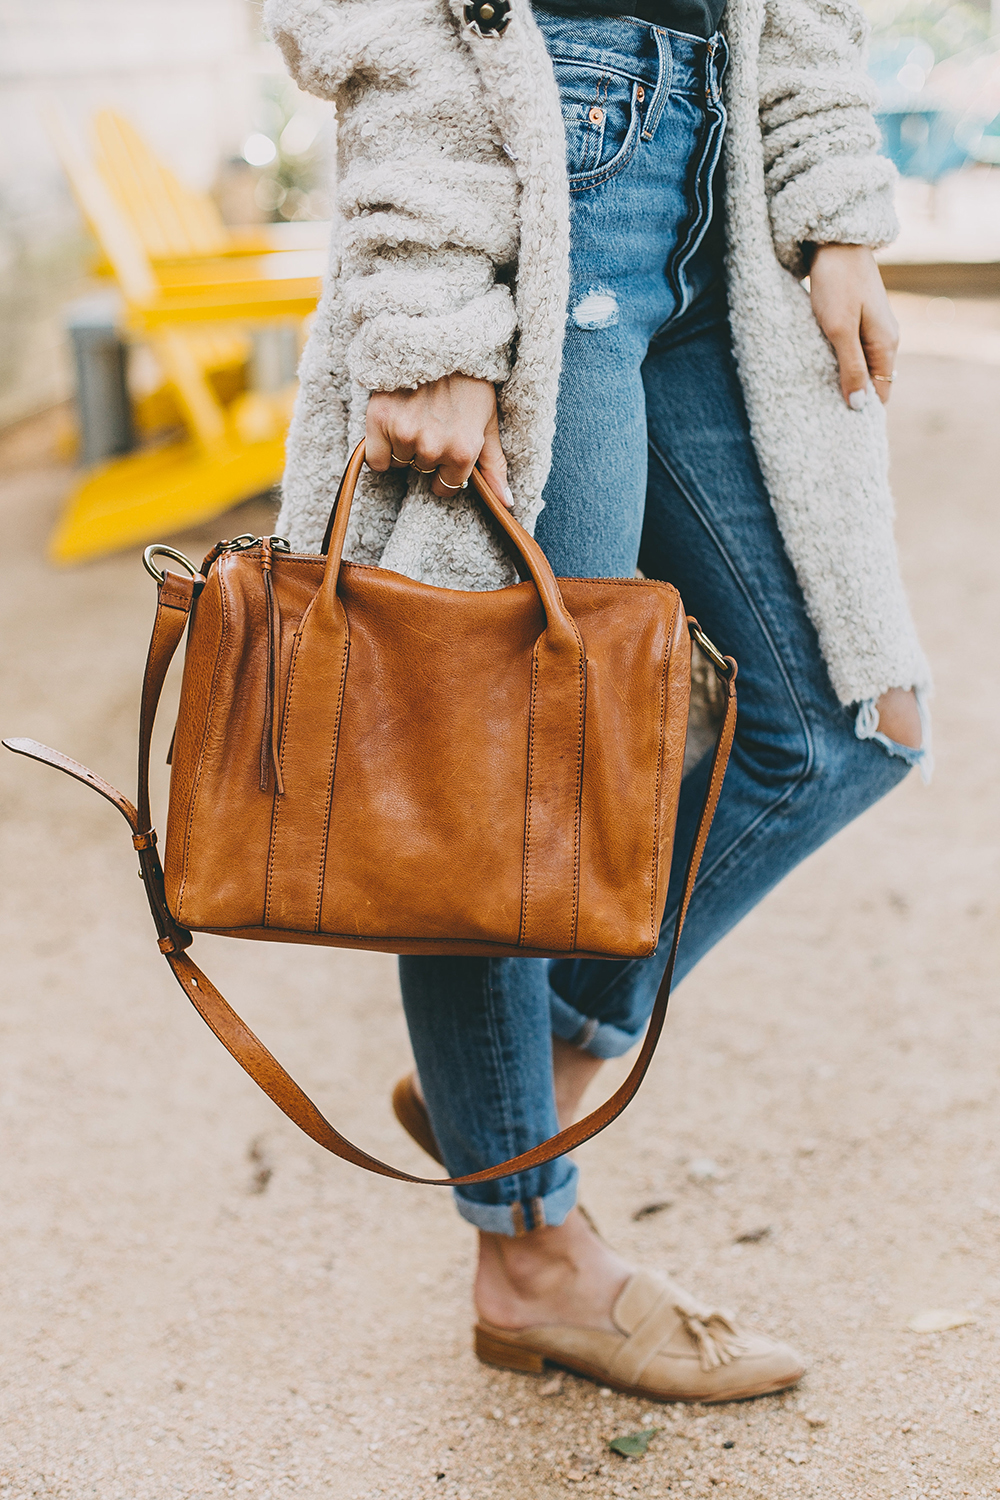 livvyland-blog-olivia-watson-toms-coffee-austin-texas-fashion-blogger-casual-fall-weekend-outfit-boucle-knit-cardigan-urban-outfitters-madewell-tan-leather-handbag